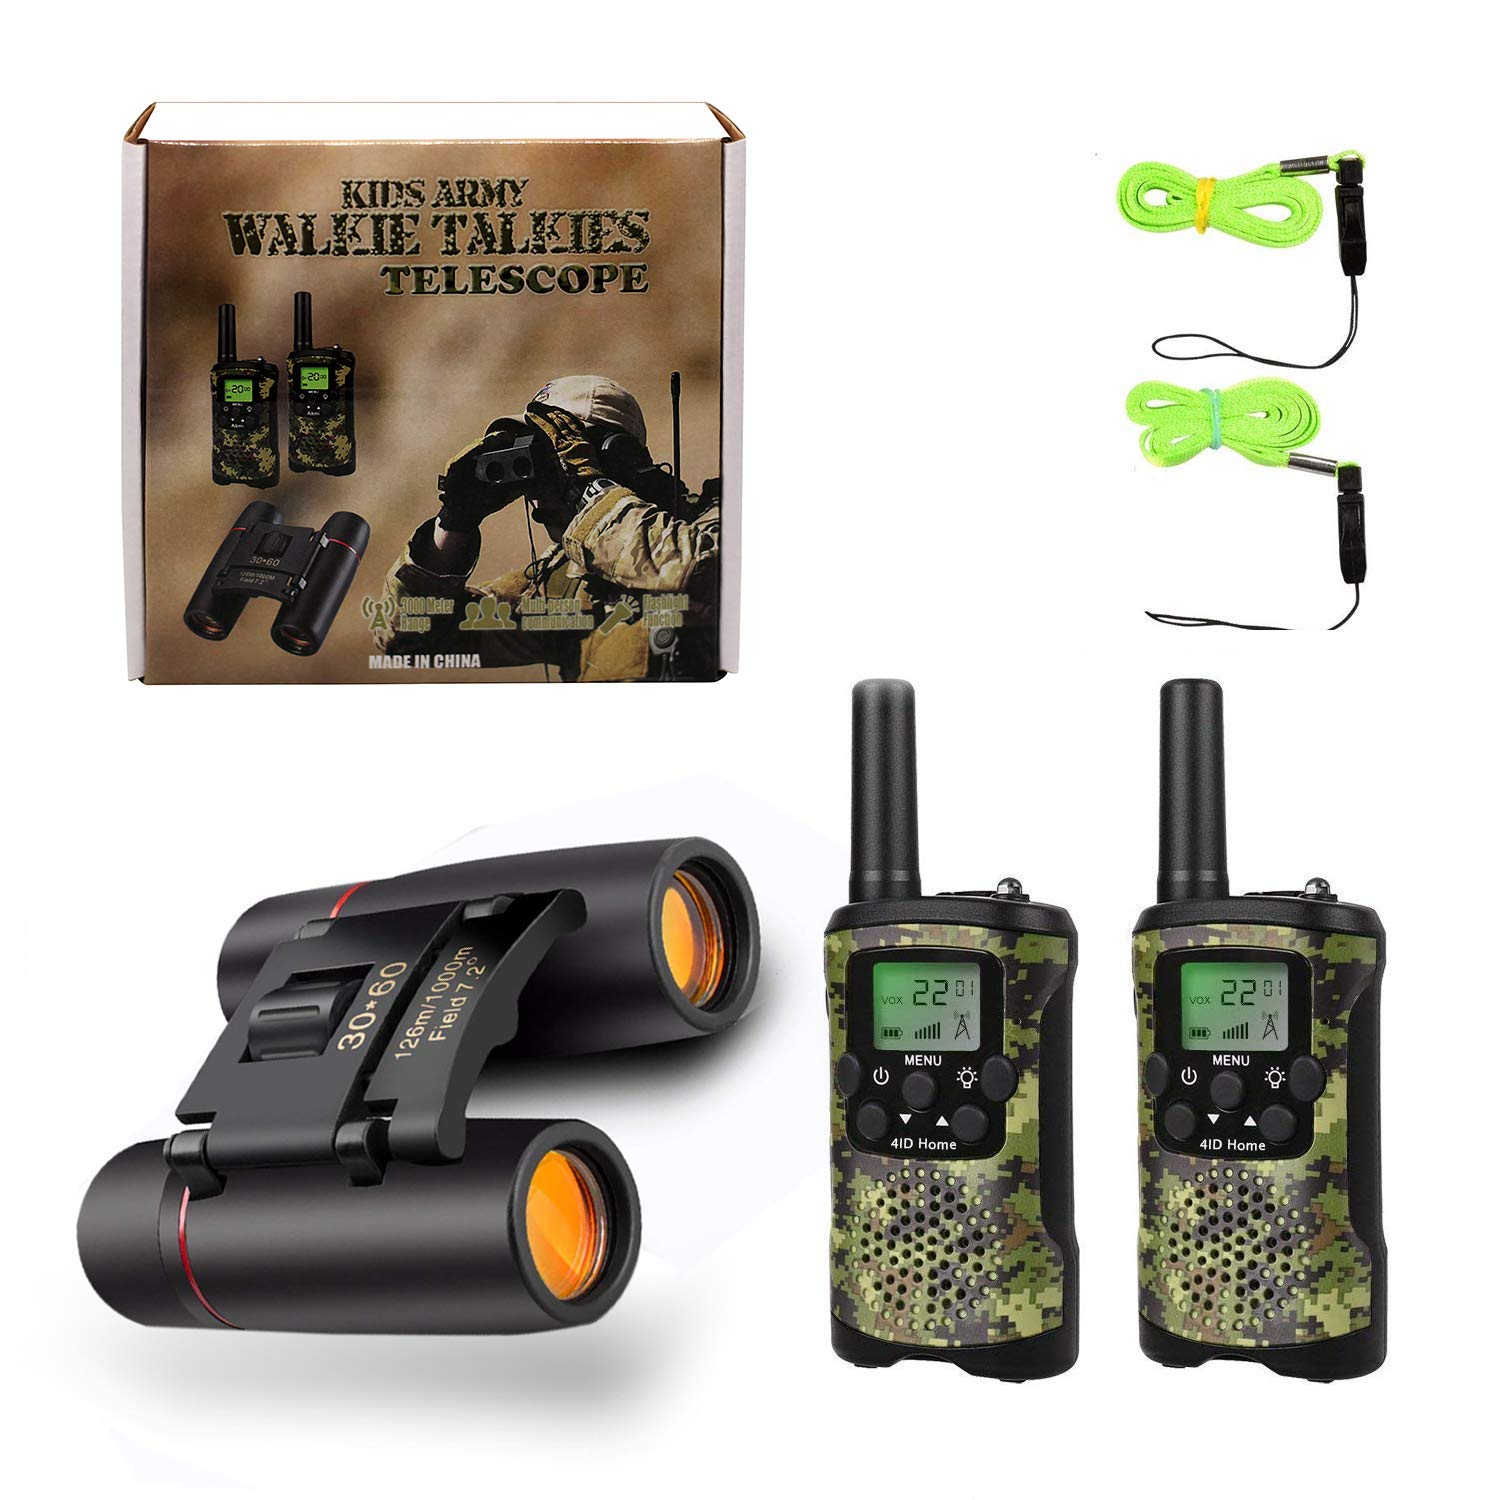 Ideahome Kids walkie talkies Binoculars Toys - Kids' Binocular 2 Way radios walkie Talkie 3 Miles Long Range walky Talky Children Outdoor Toys Best Gifts for Boys and Girls (camo) by Ideahome (Image #7)